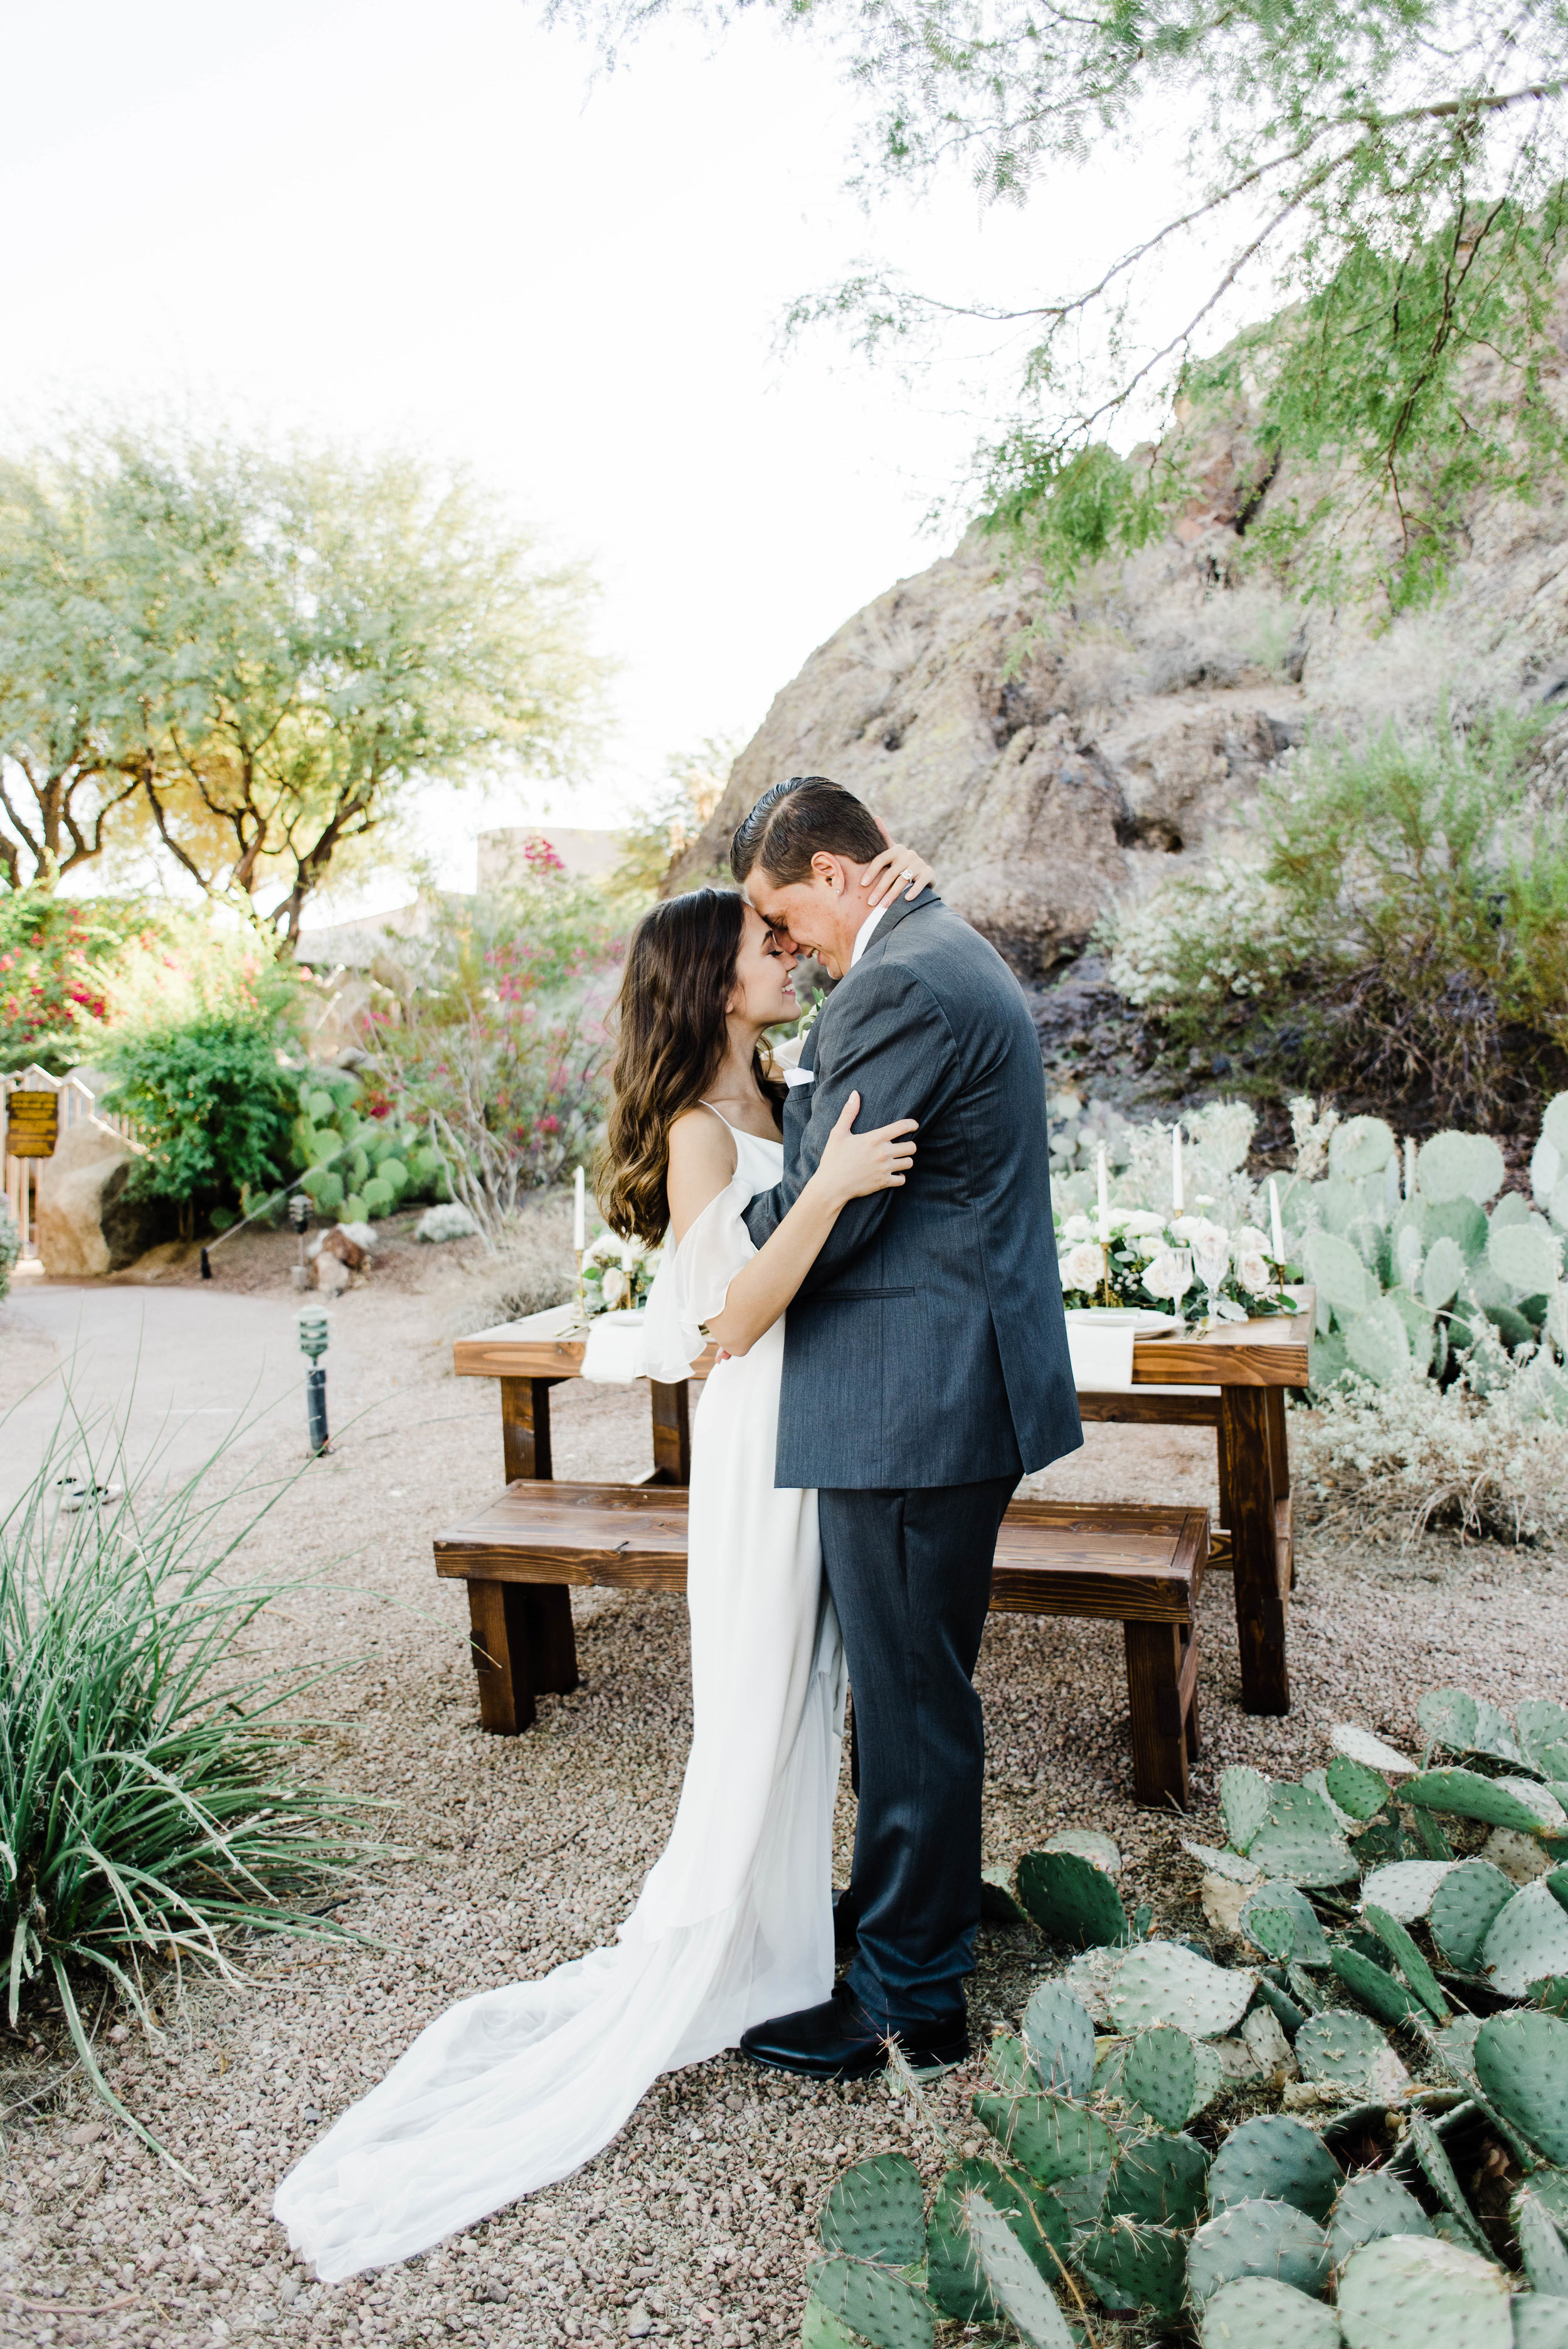 wedding ideas | wedding dress | spring wedding ideas | summer wedding inspiration | Sadie Banks Photography